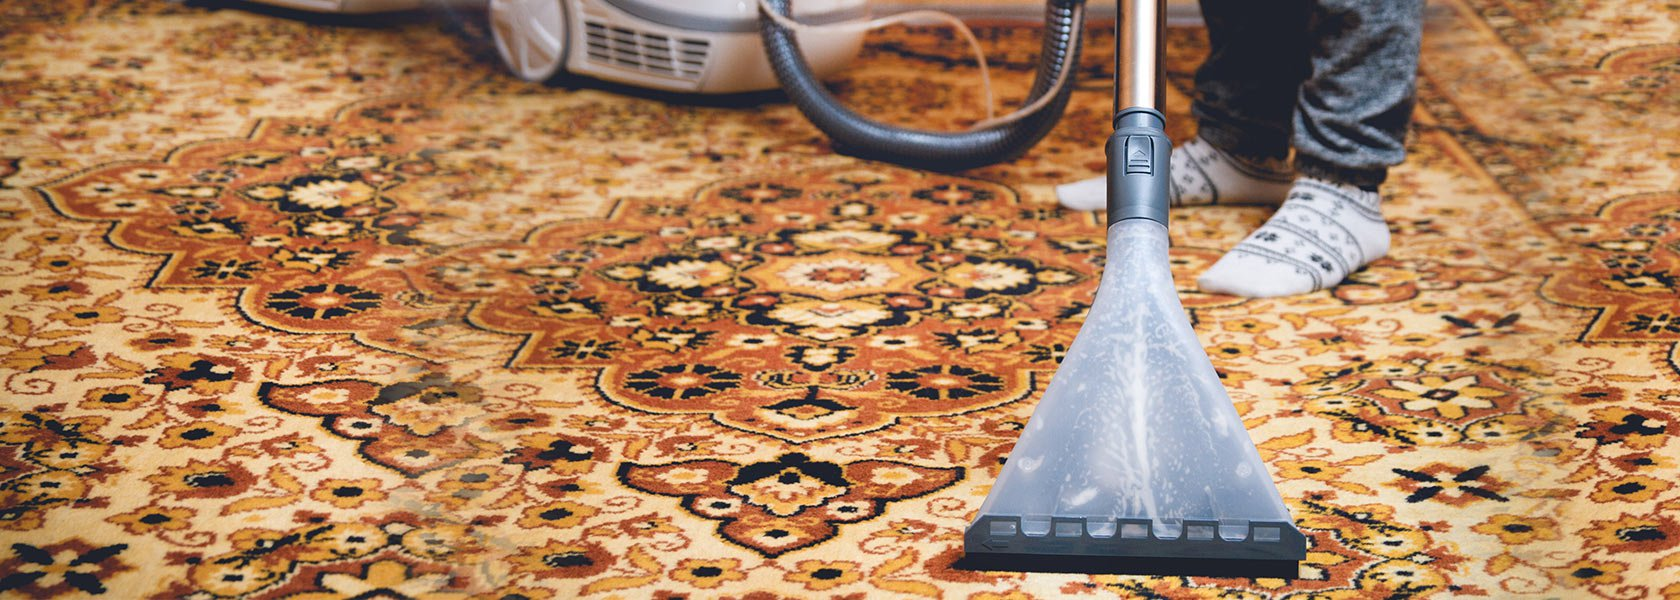 Step by Step Guide on Cleaning Persian Rugs